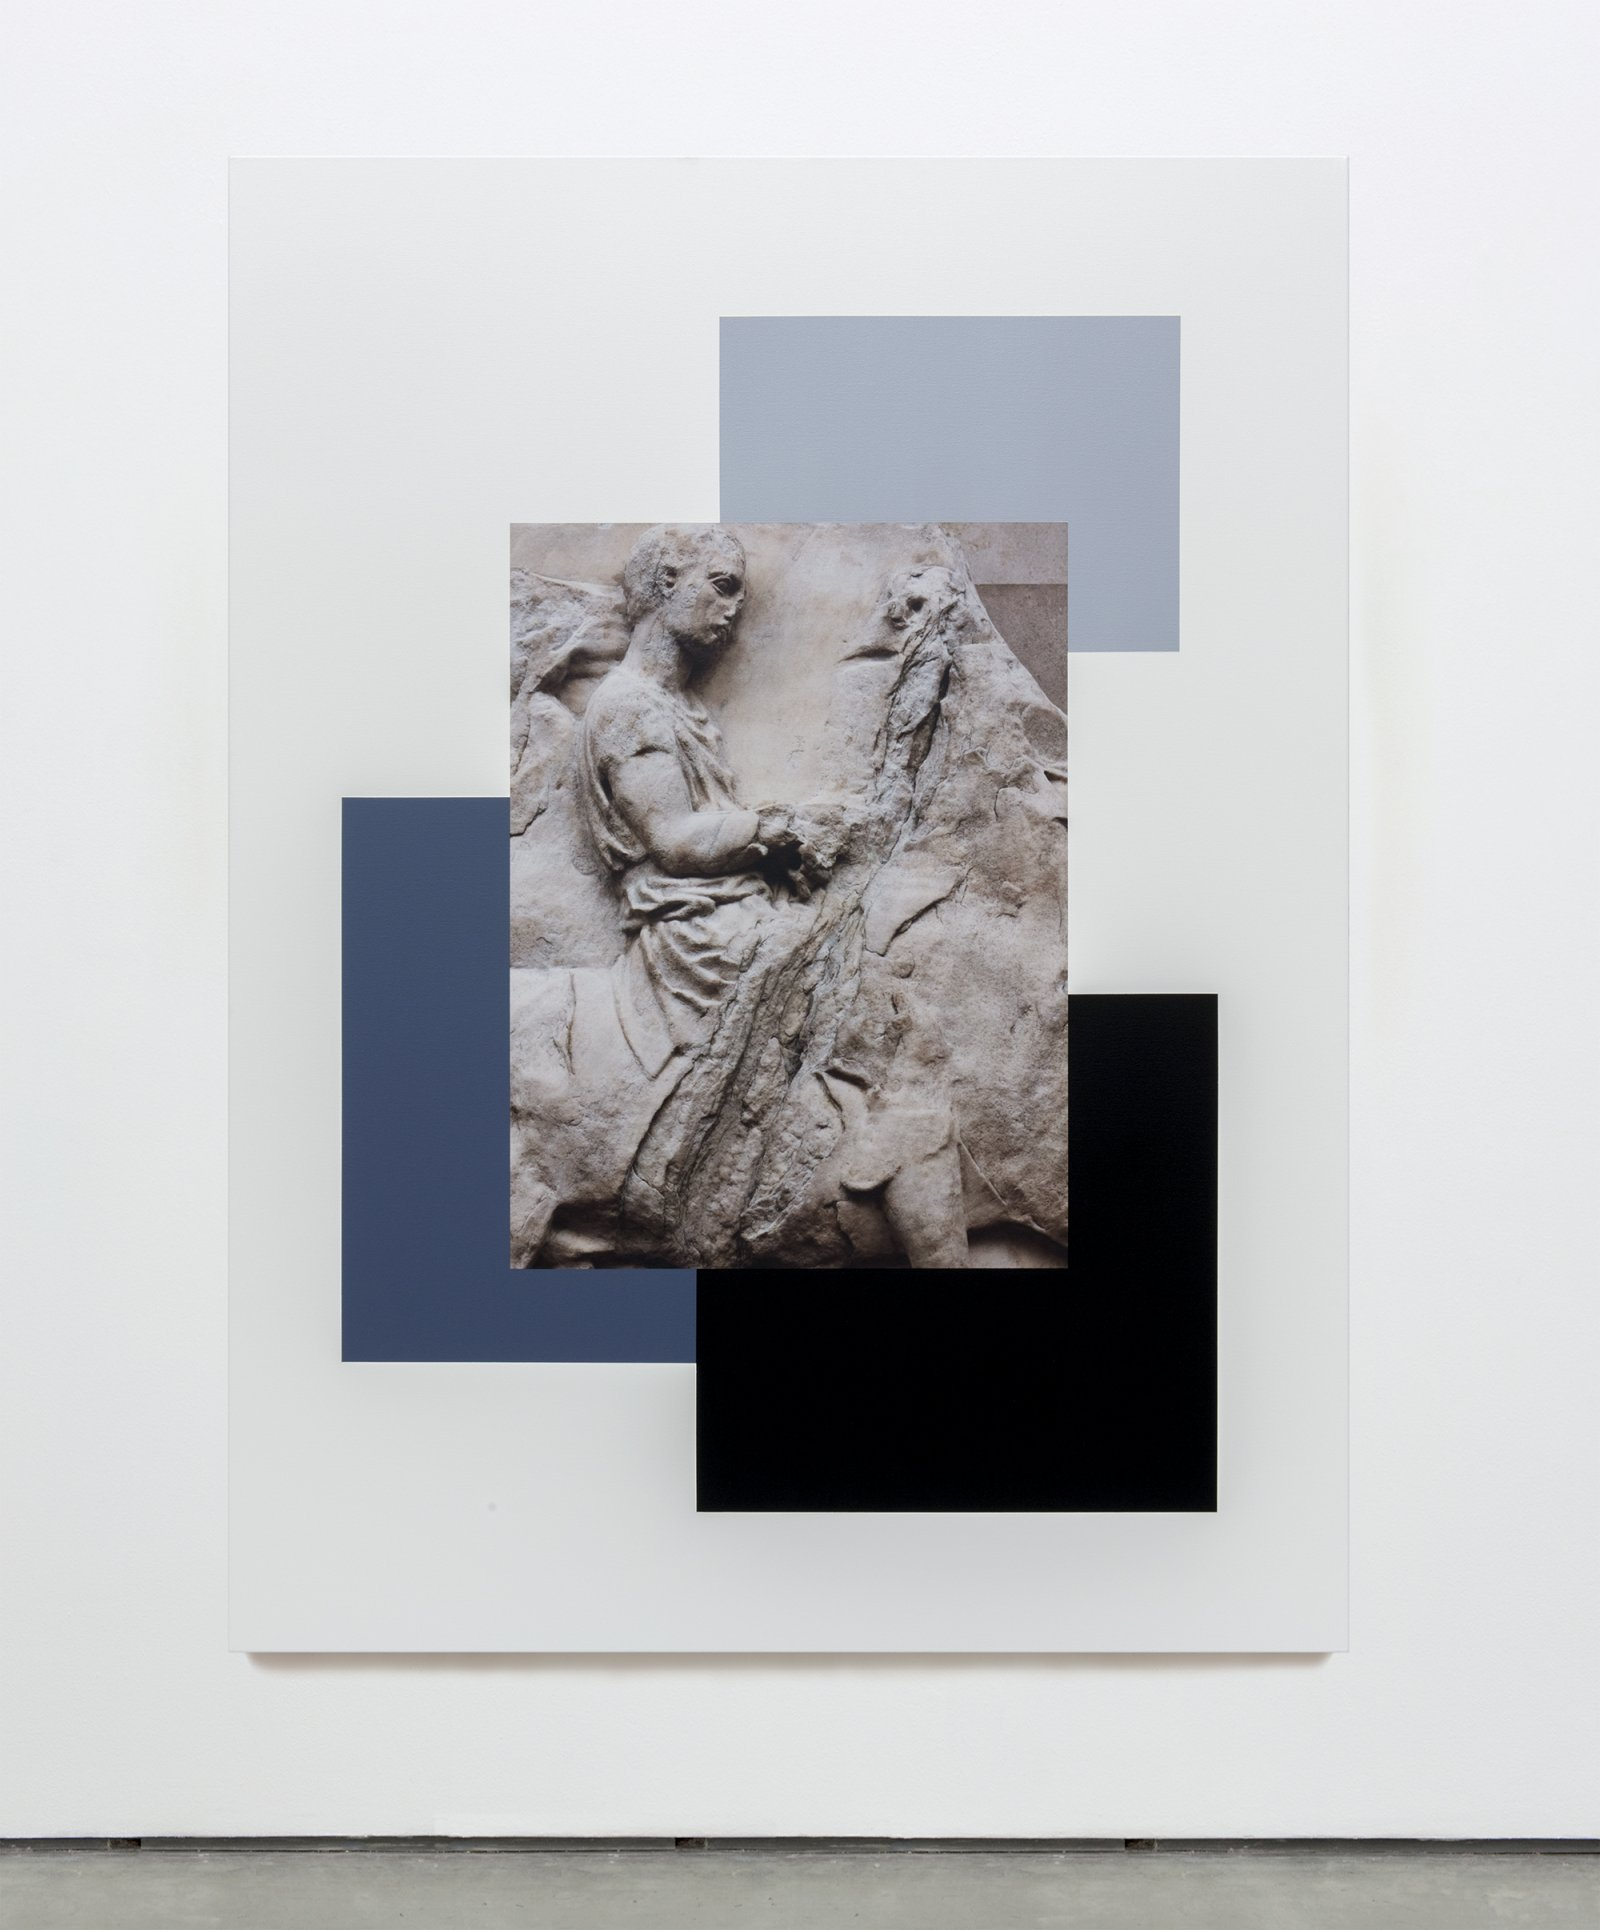 Ian Wallace,The Riders of the Parthenon Frieze I, 2013, photolaminate and acrylic on canvas, 80 x 60in. (203 x 153cm)